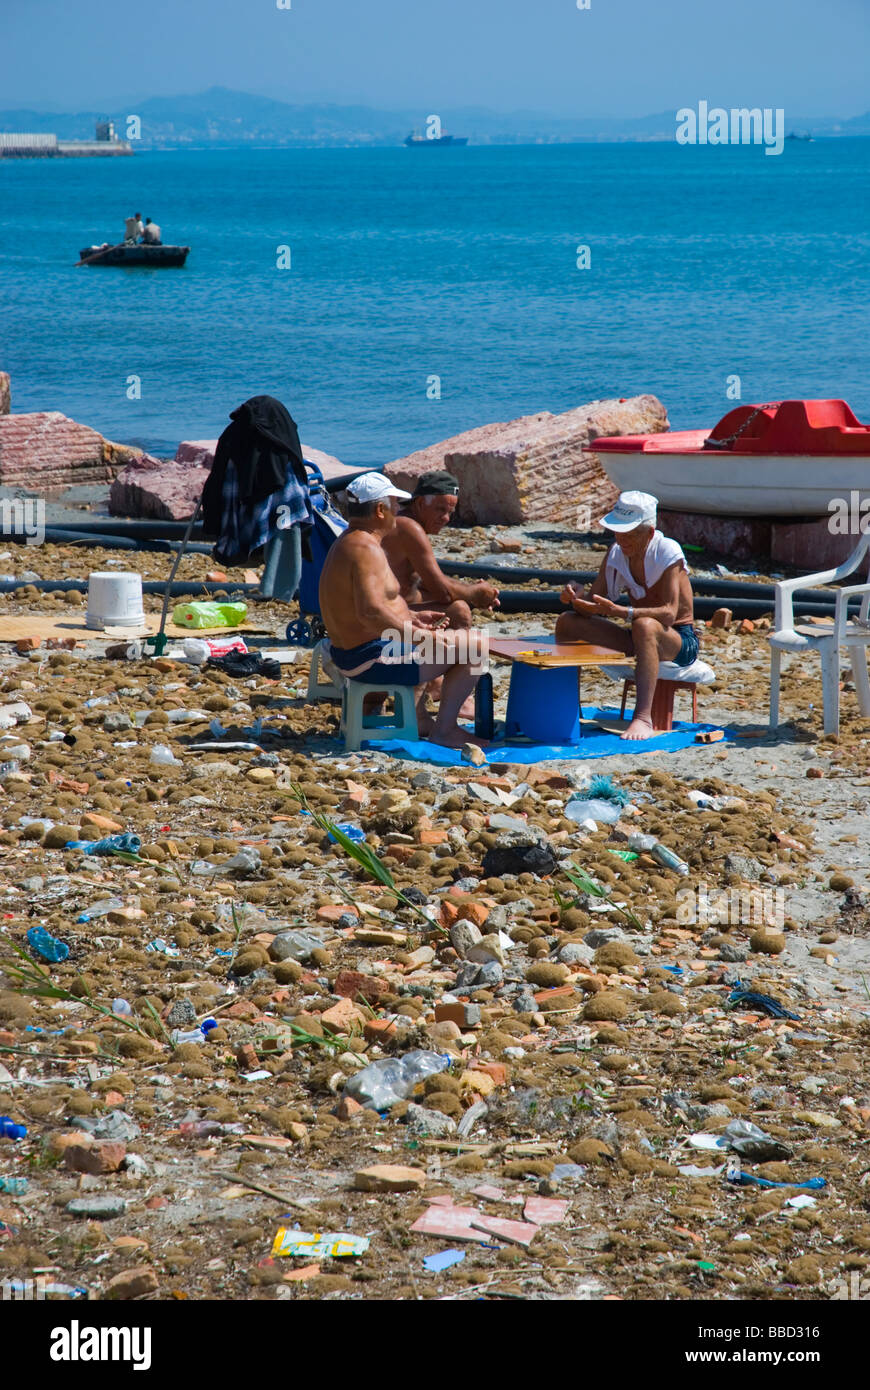 People playing a boardgame on a dirty beach in Durres Albania Europe Stock Photo